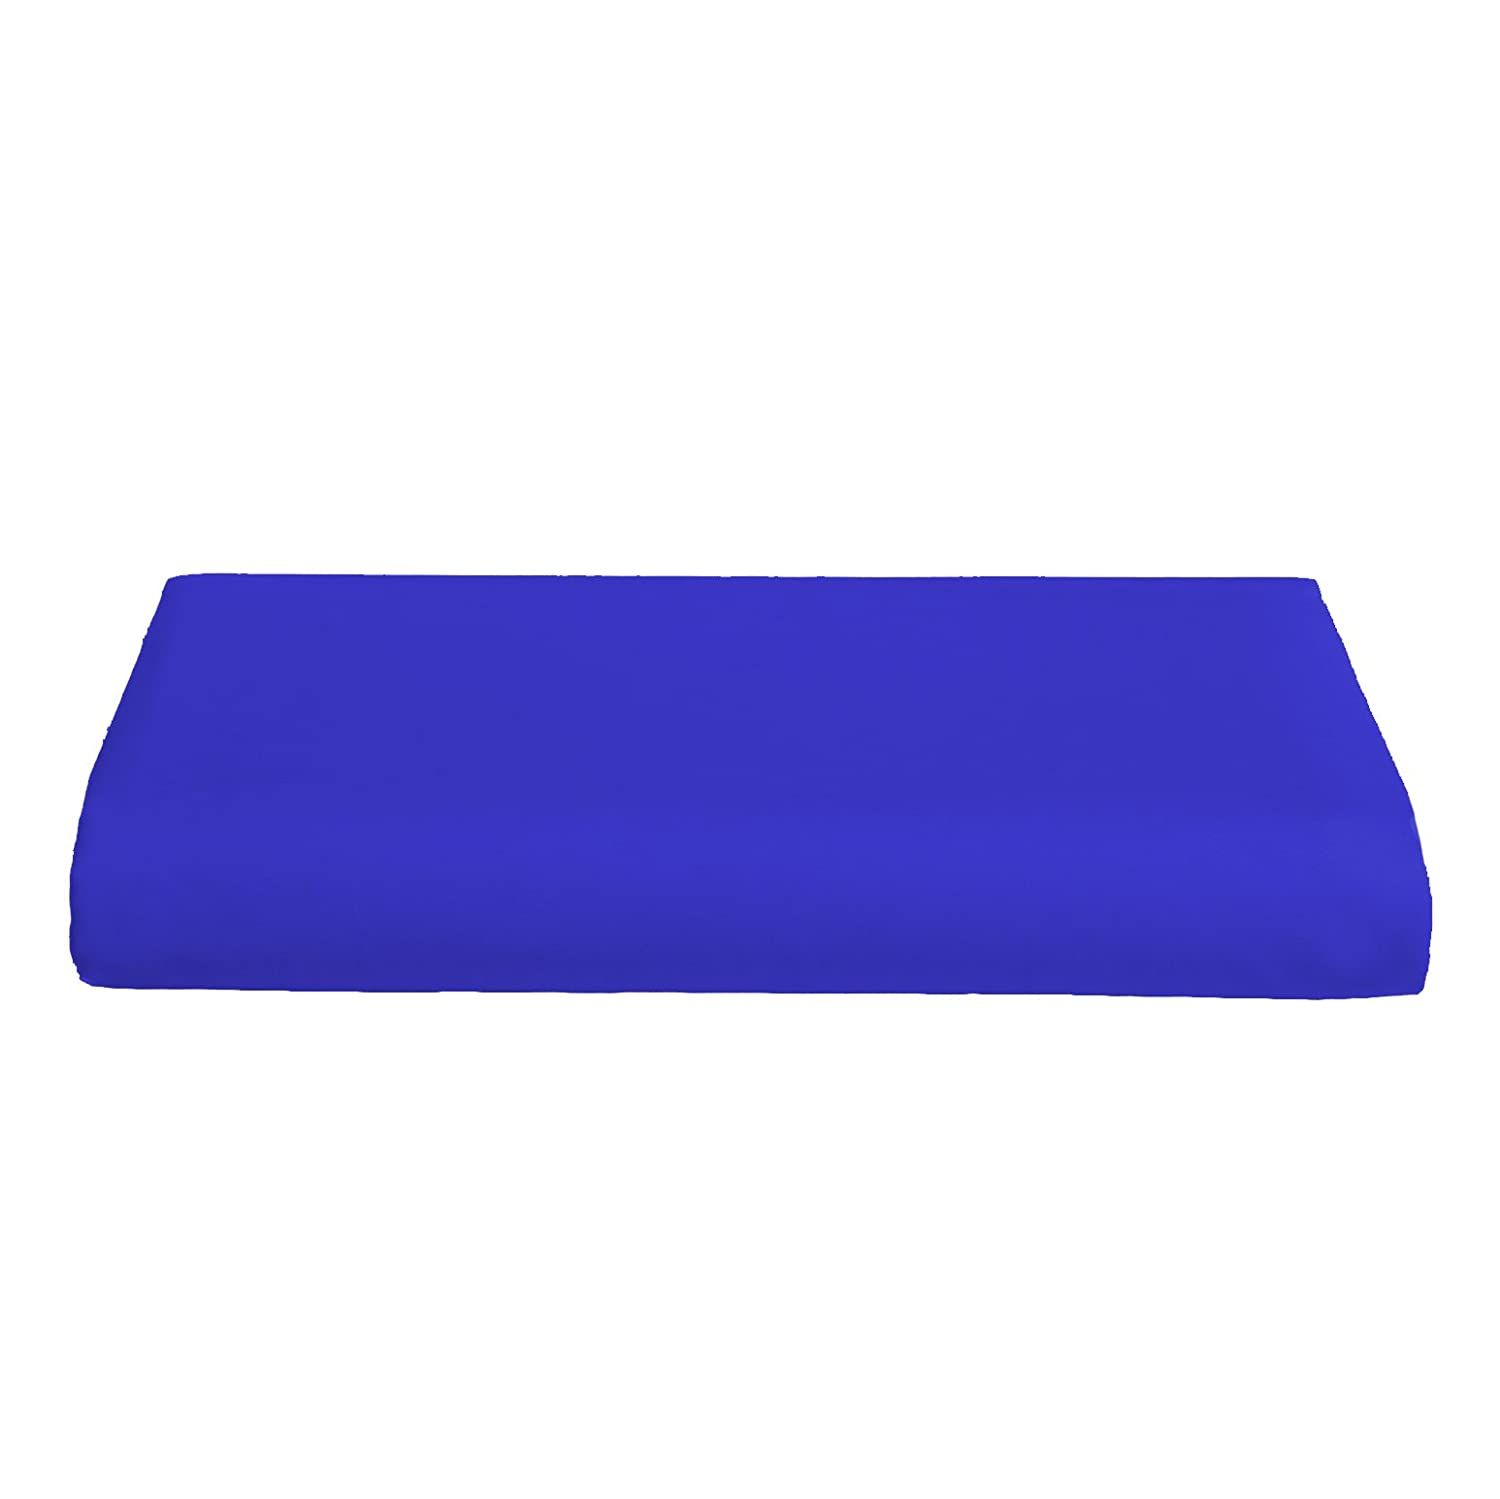 Crib & Toddler Poly/Cotton Sheet - Color: Royal Blue - Flat by Baby Doll   B000IG8HYM